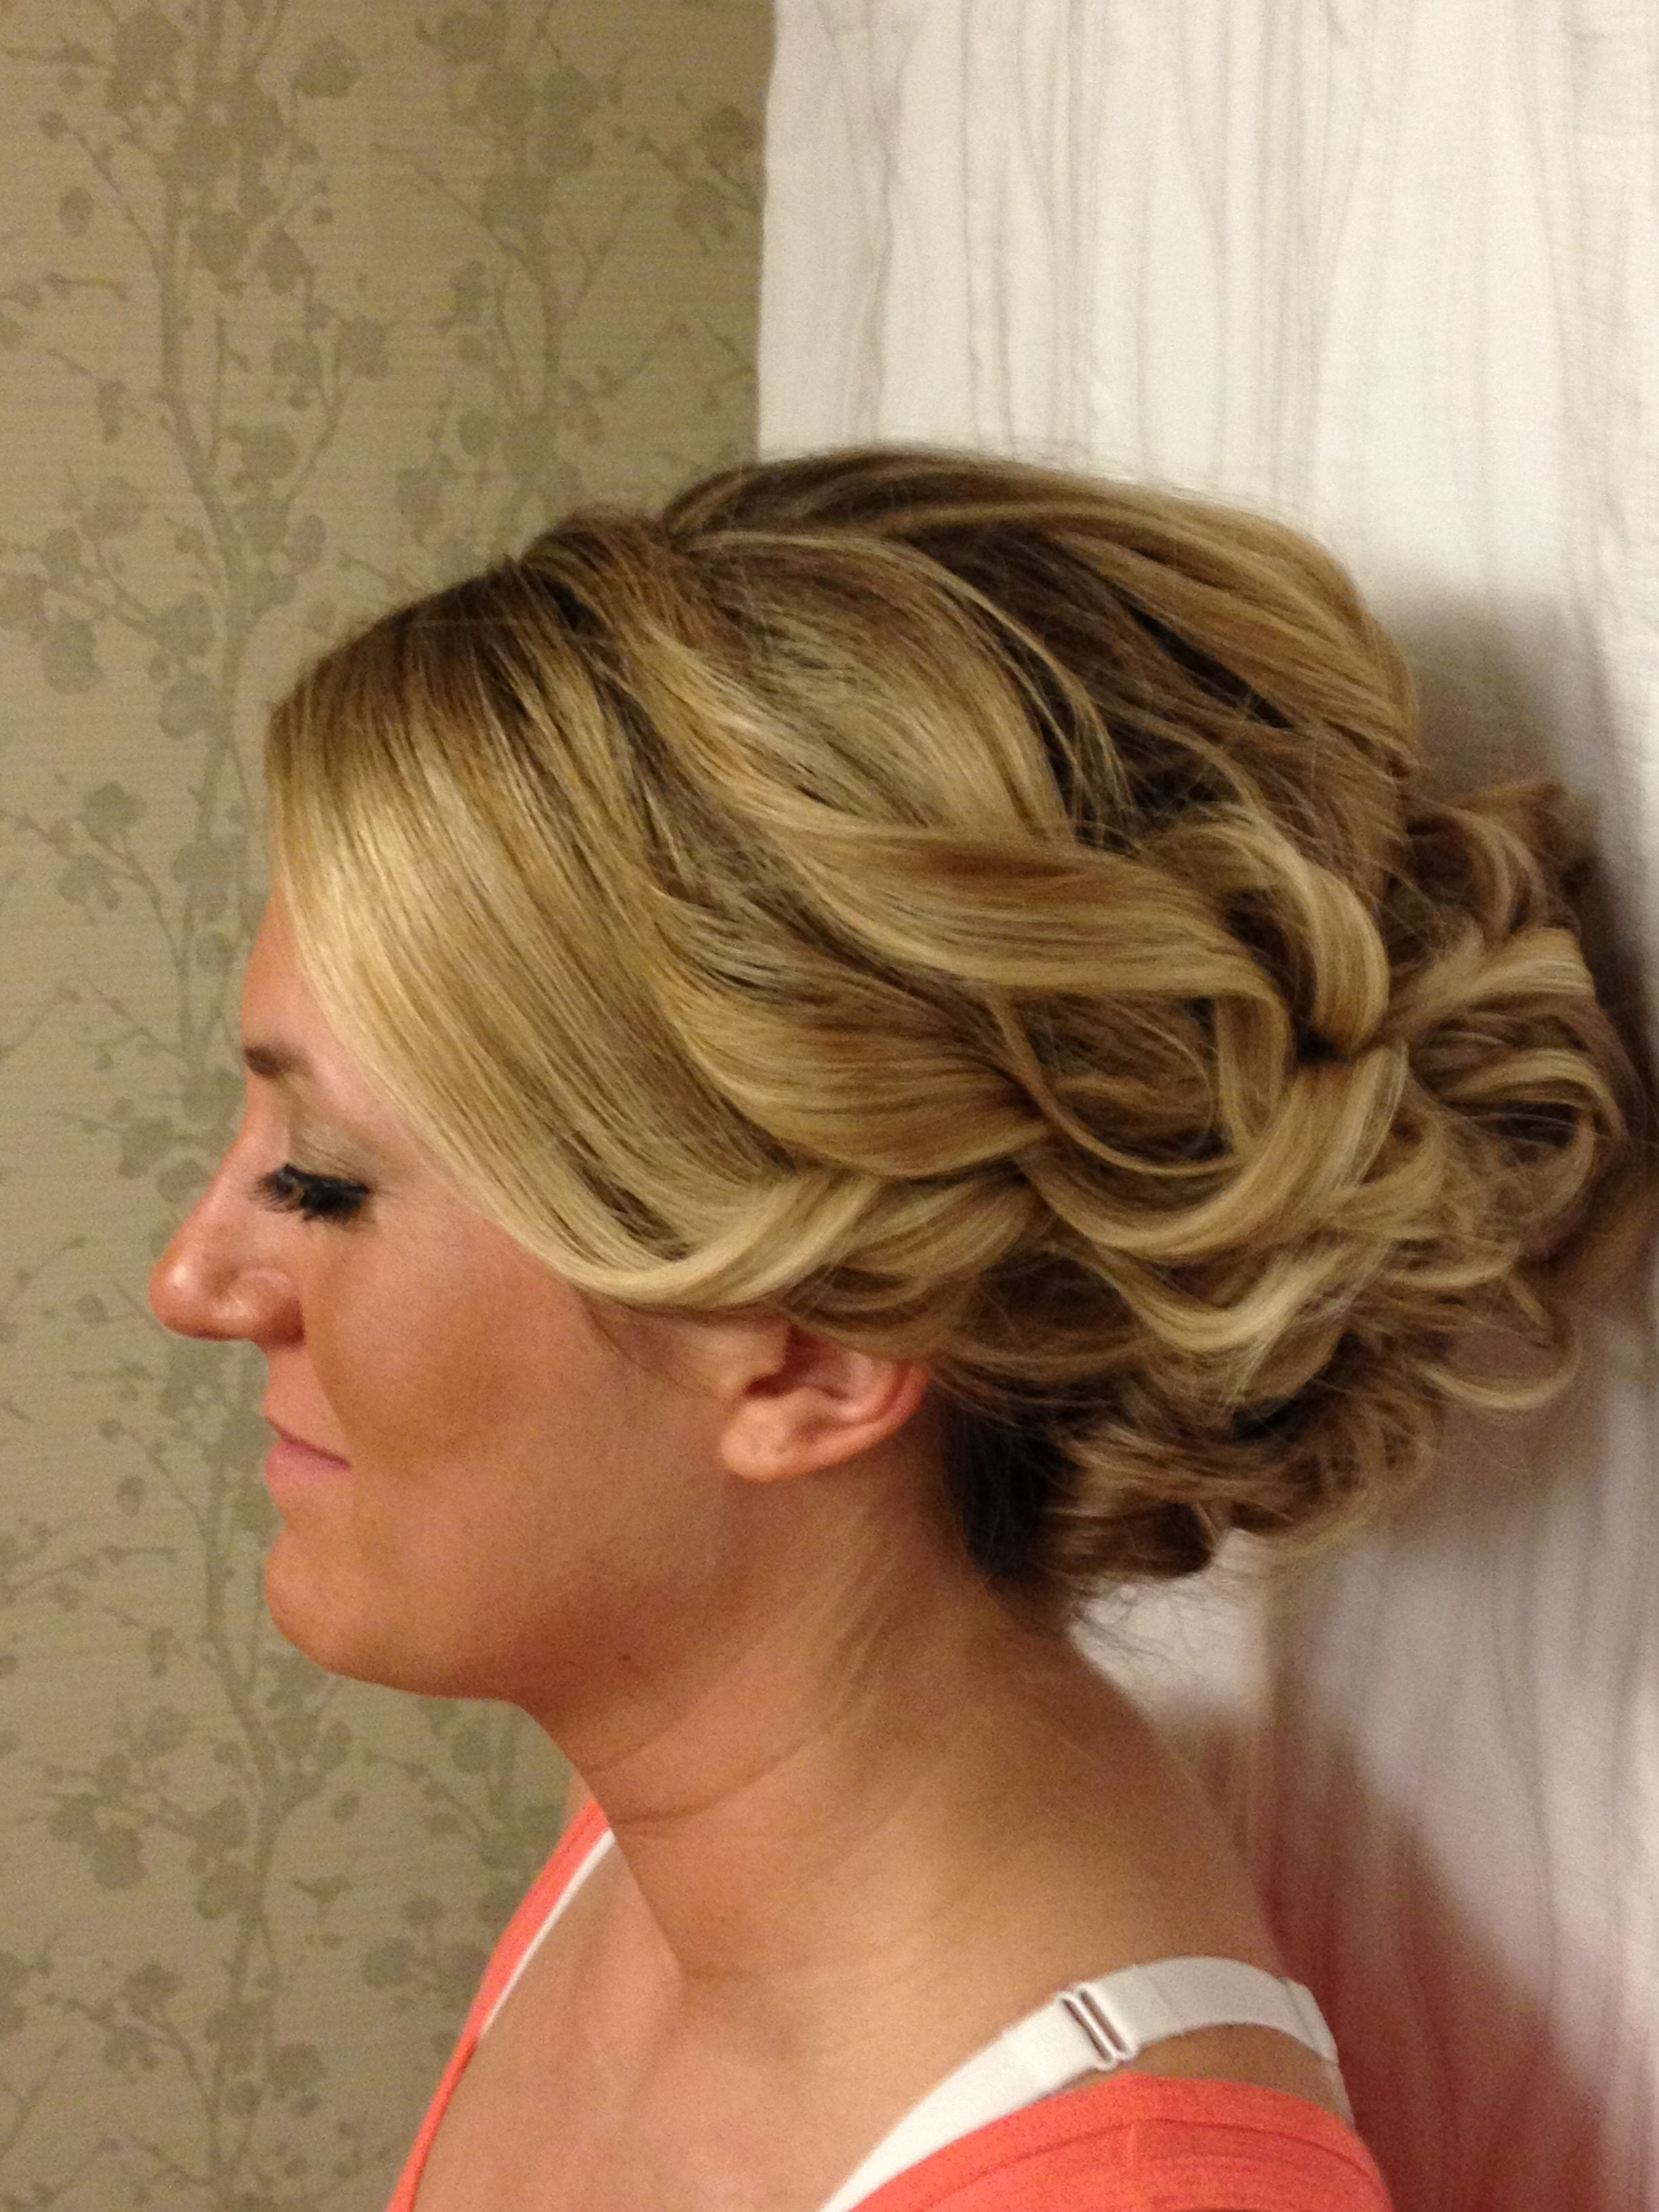 Updo For Long, Thick Hair For Homecoming Or A Wedding | Charisma With Regard To Easy Updo Hairstyles For Thick Hair (View 14 of 15)